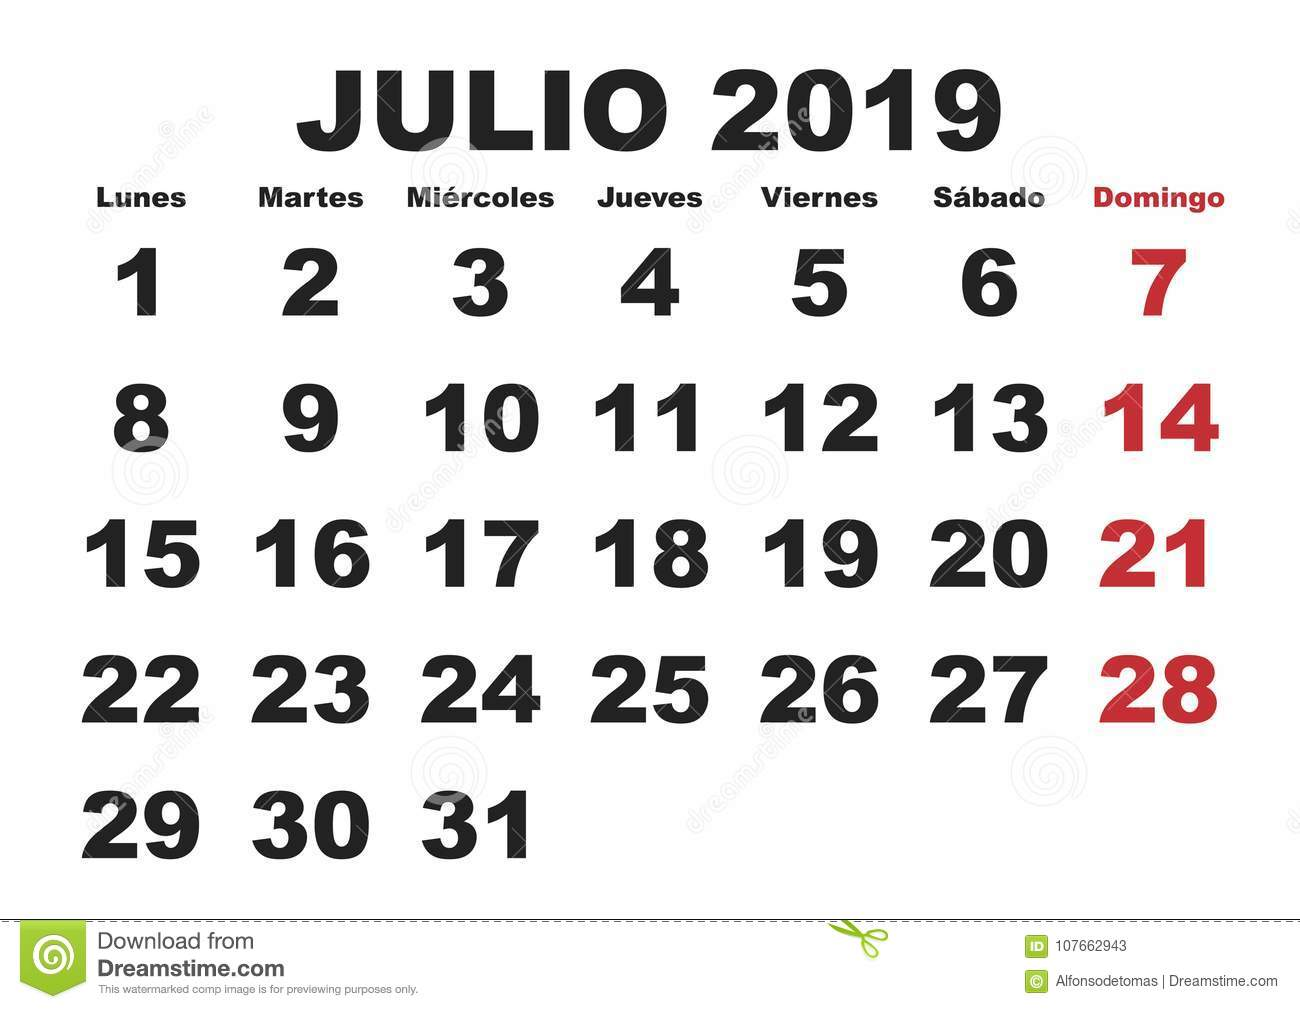 Calendario Julio 2019 Vector.Julio 2019 Wall Calendar Spanish Stock Vector Illustration